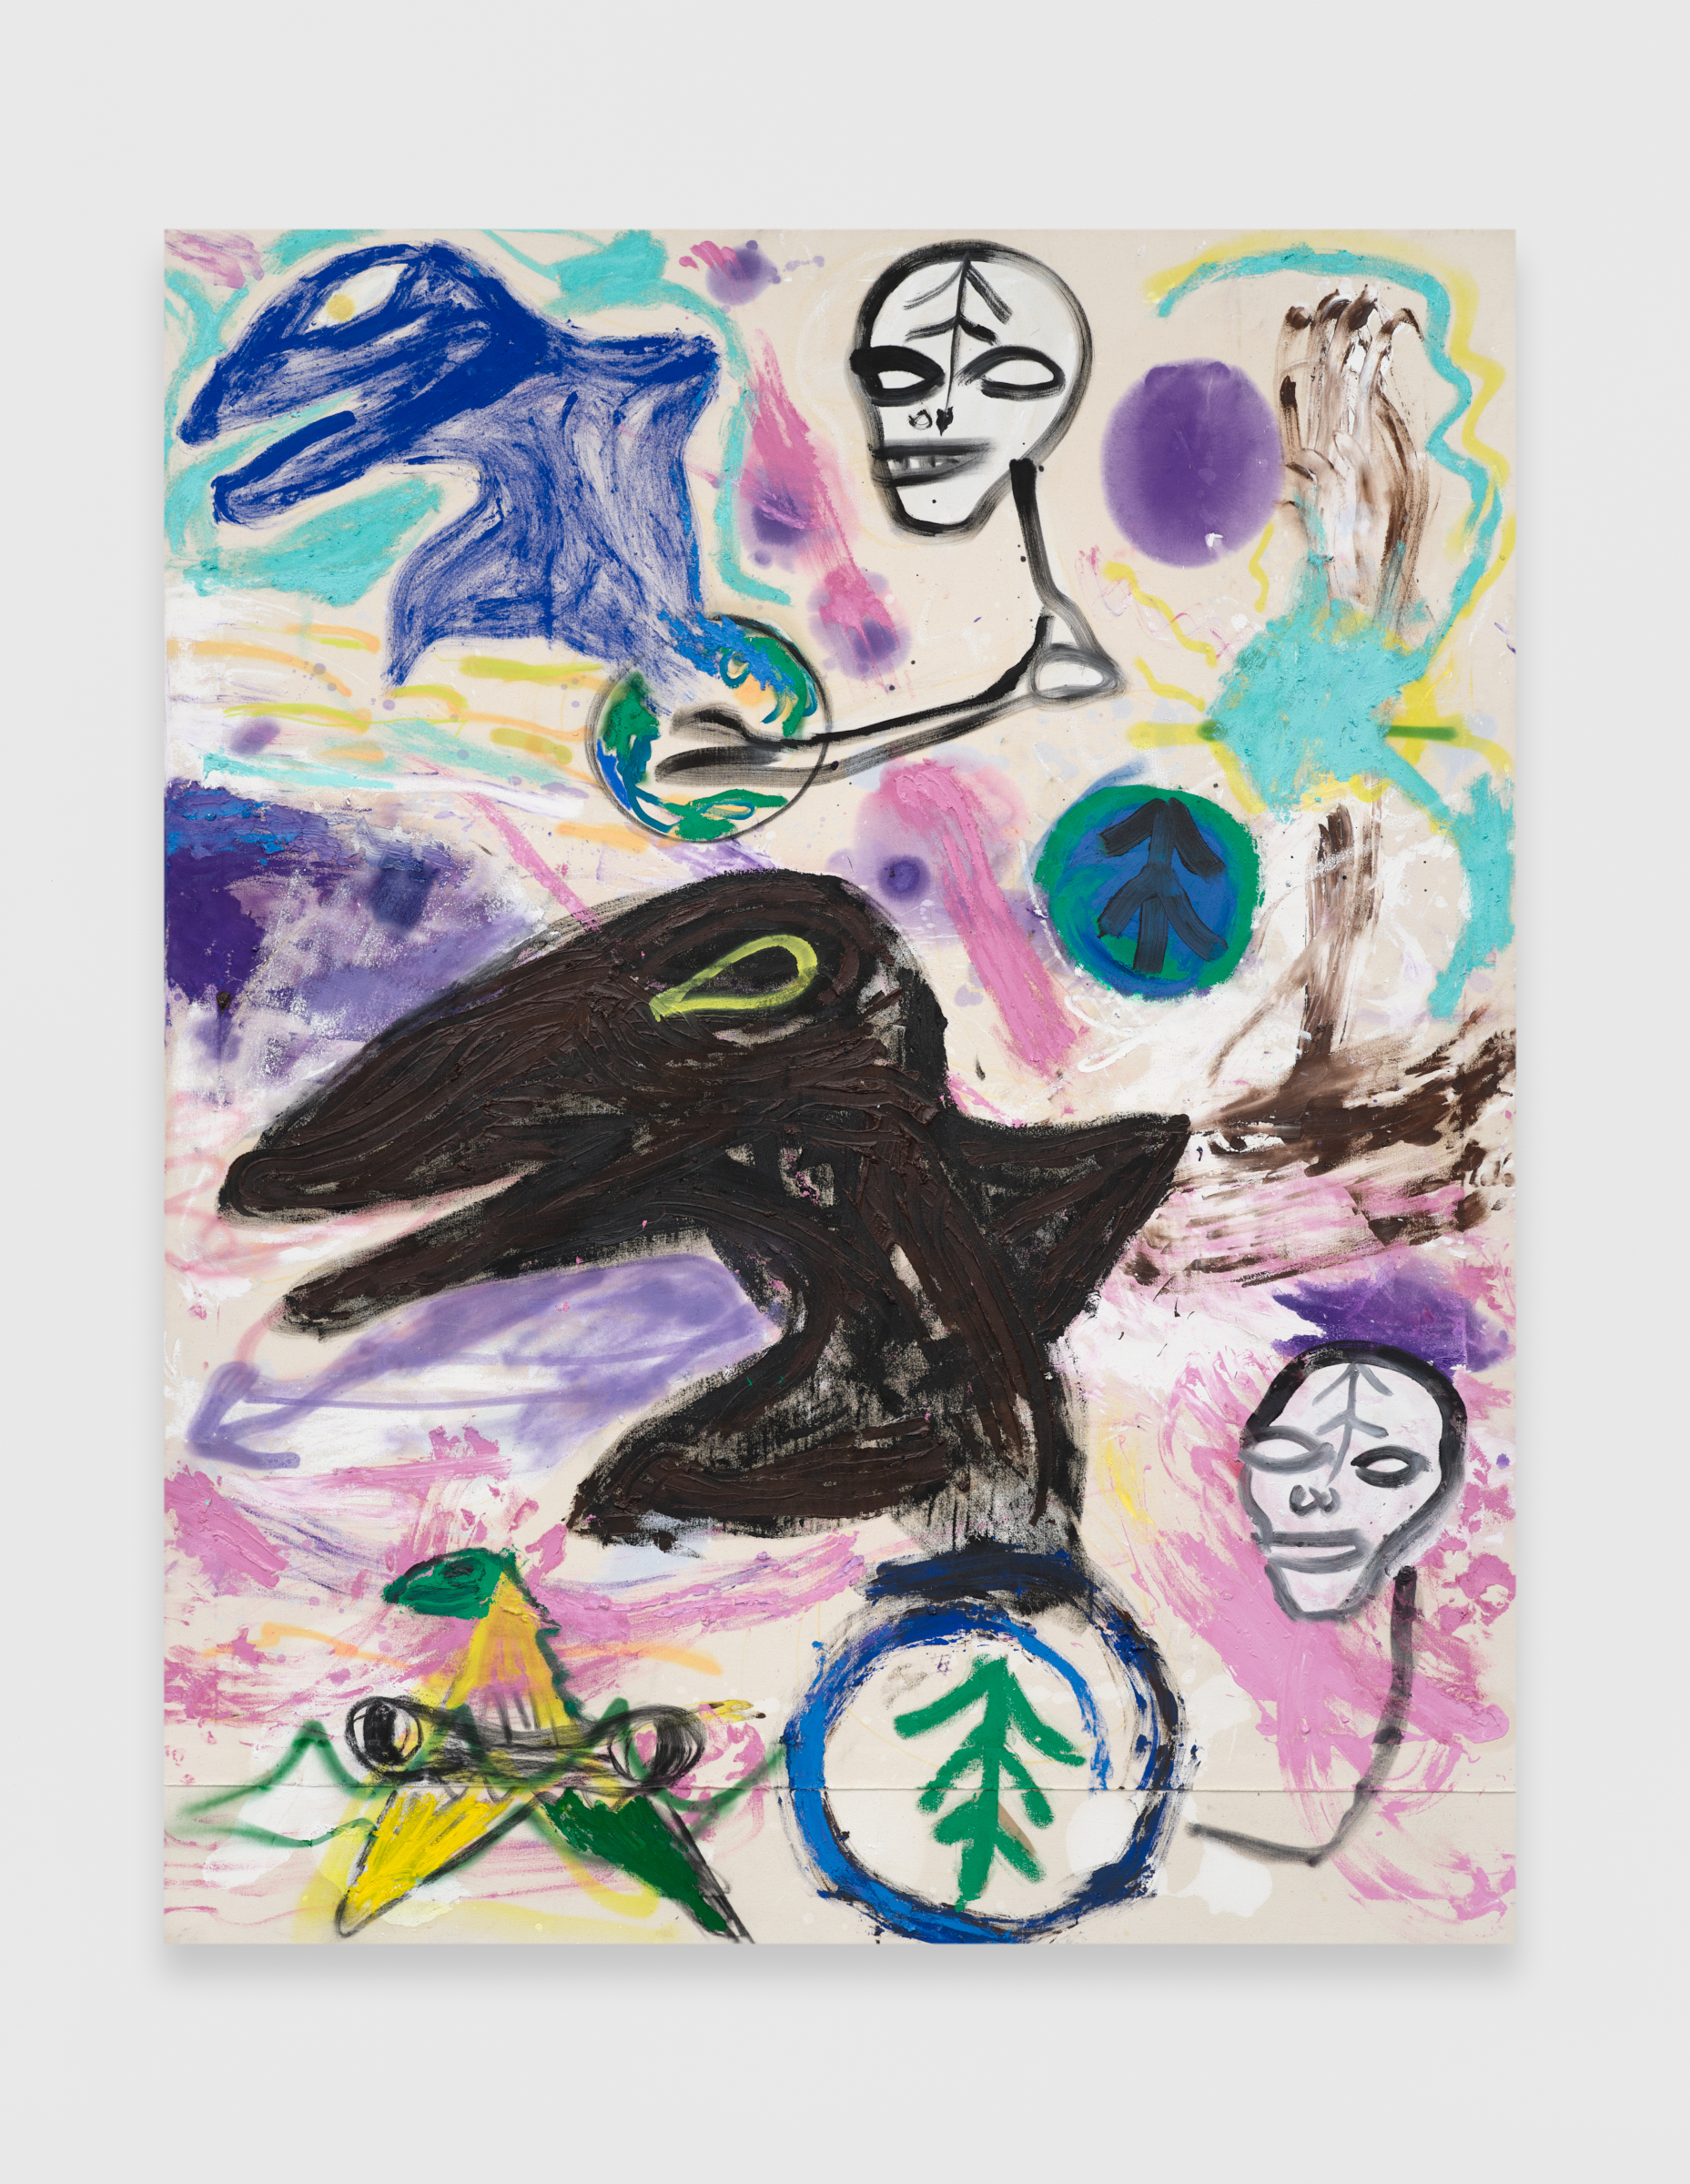 Bill Saylor, The Big Seed, 2020, Oil, charcoal, and spray paint on canvas, 84h x 66w in.